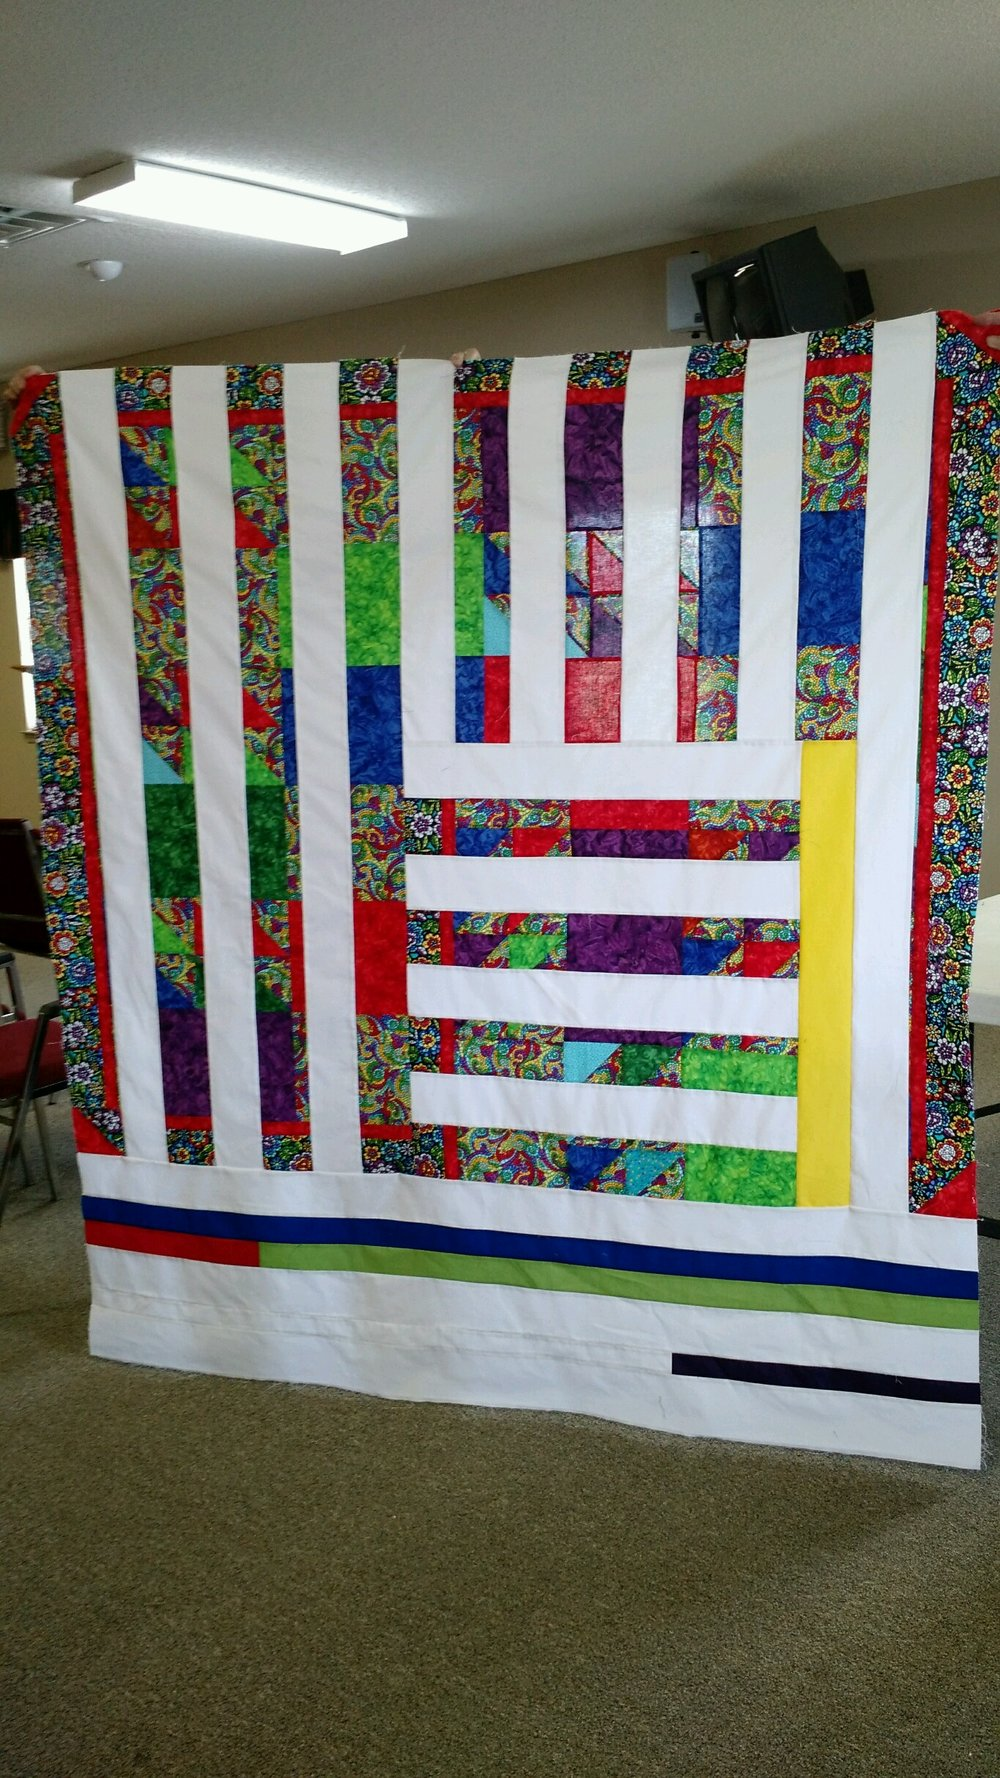 The remix quilt was assembled during our July sew-in